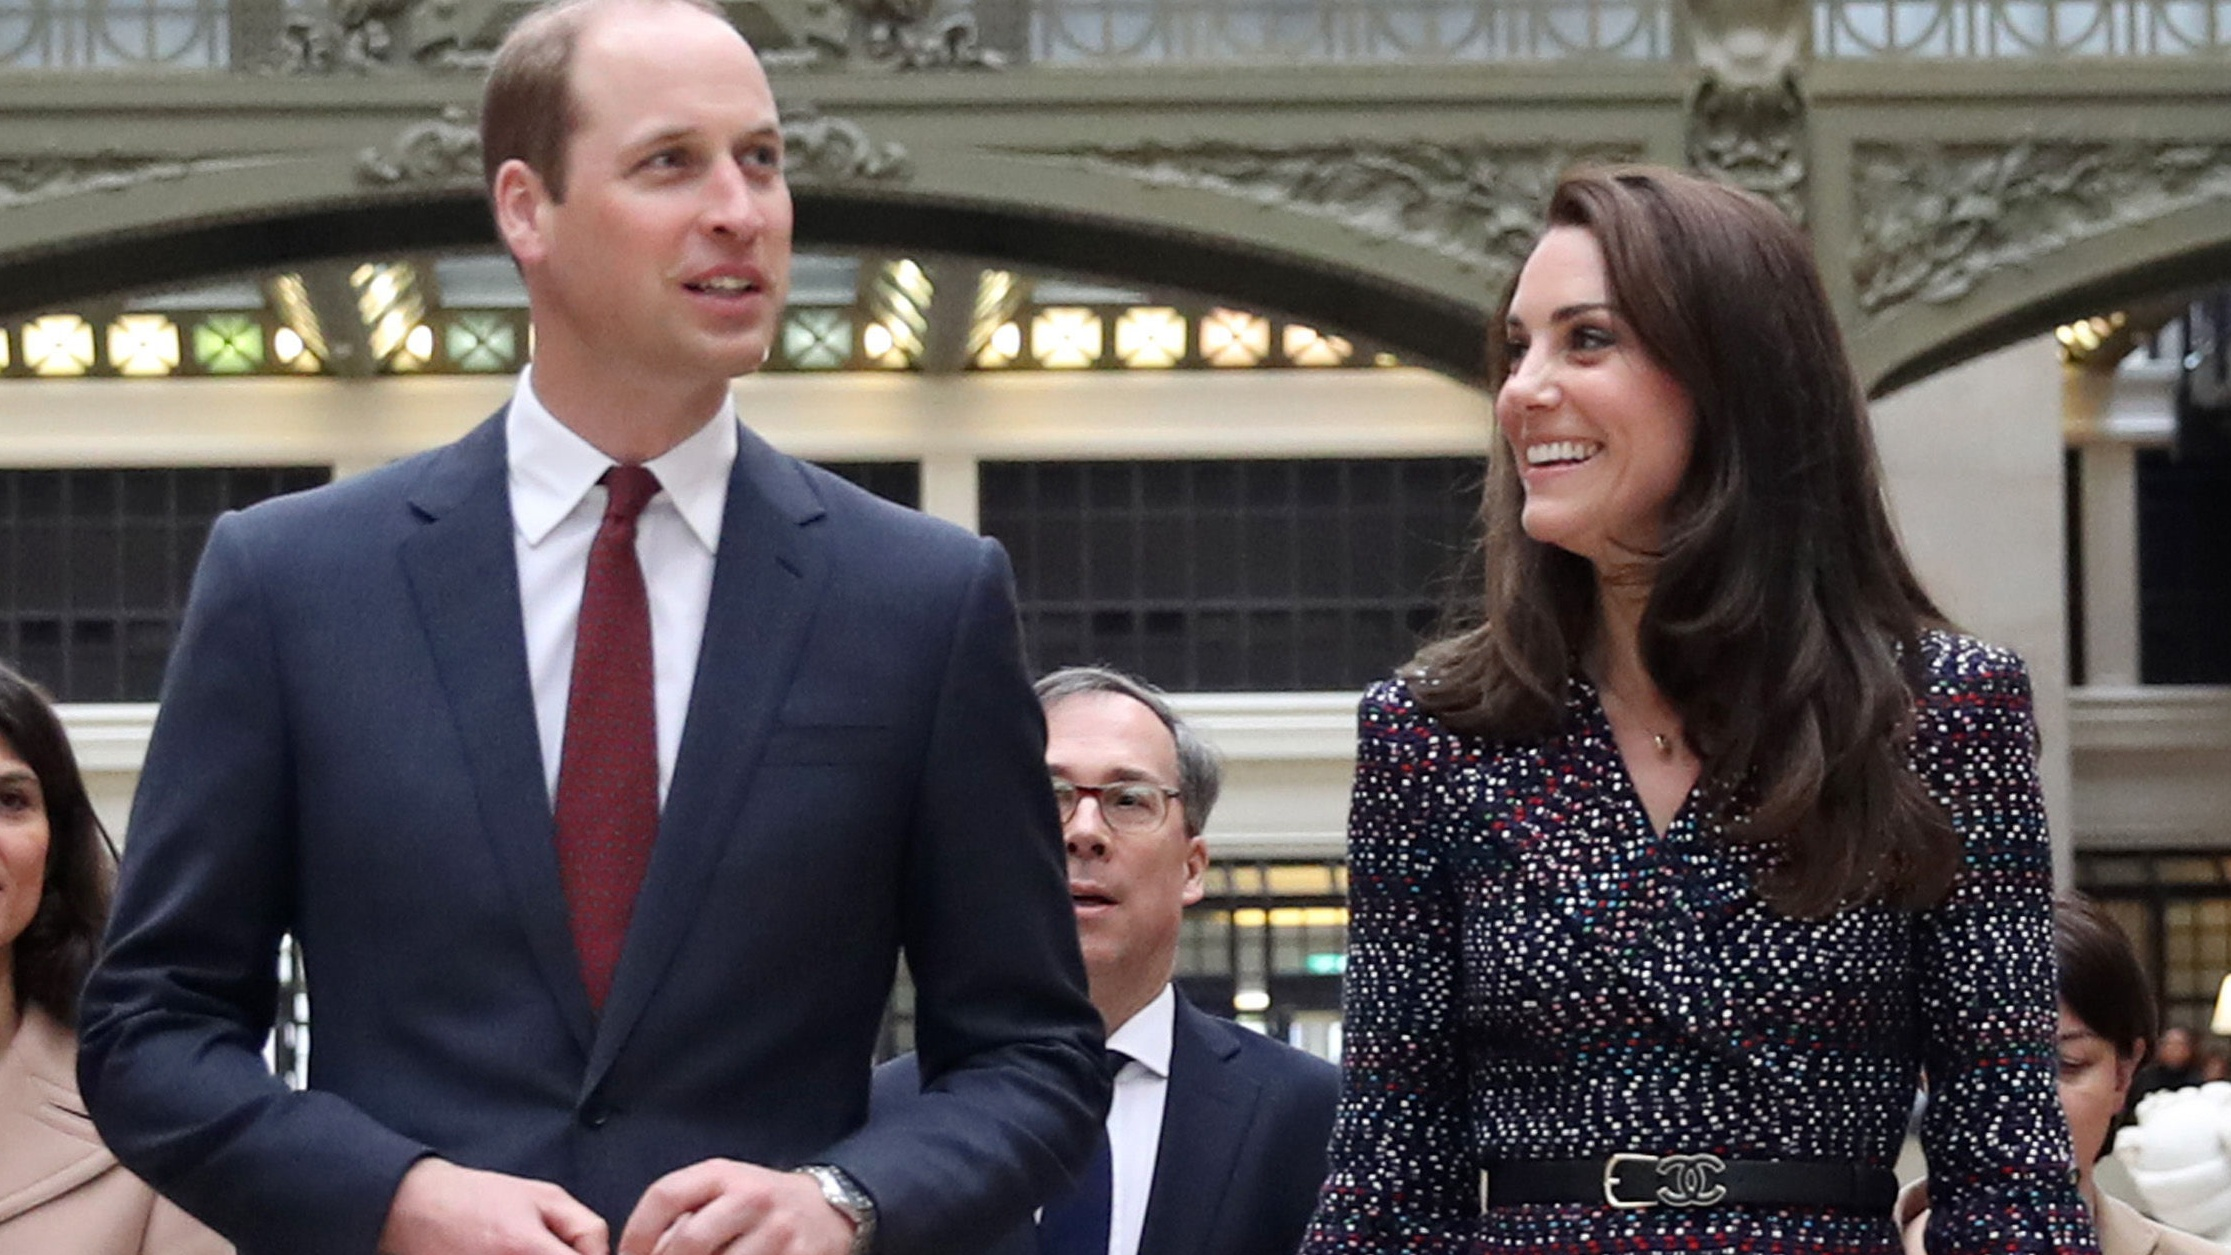 Britain's Prince William and Kate to Visit Poland, Germany